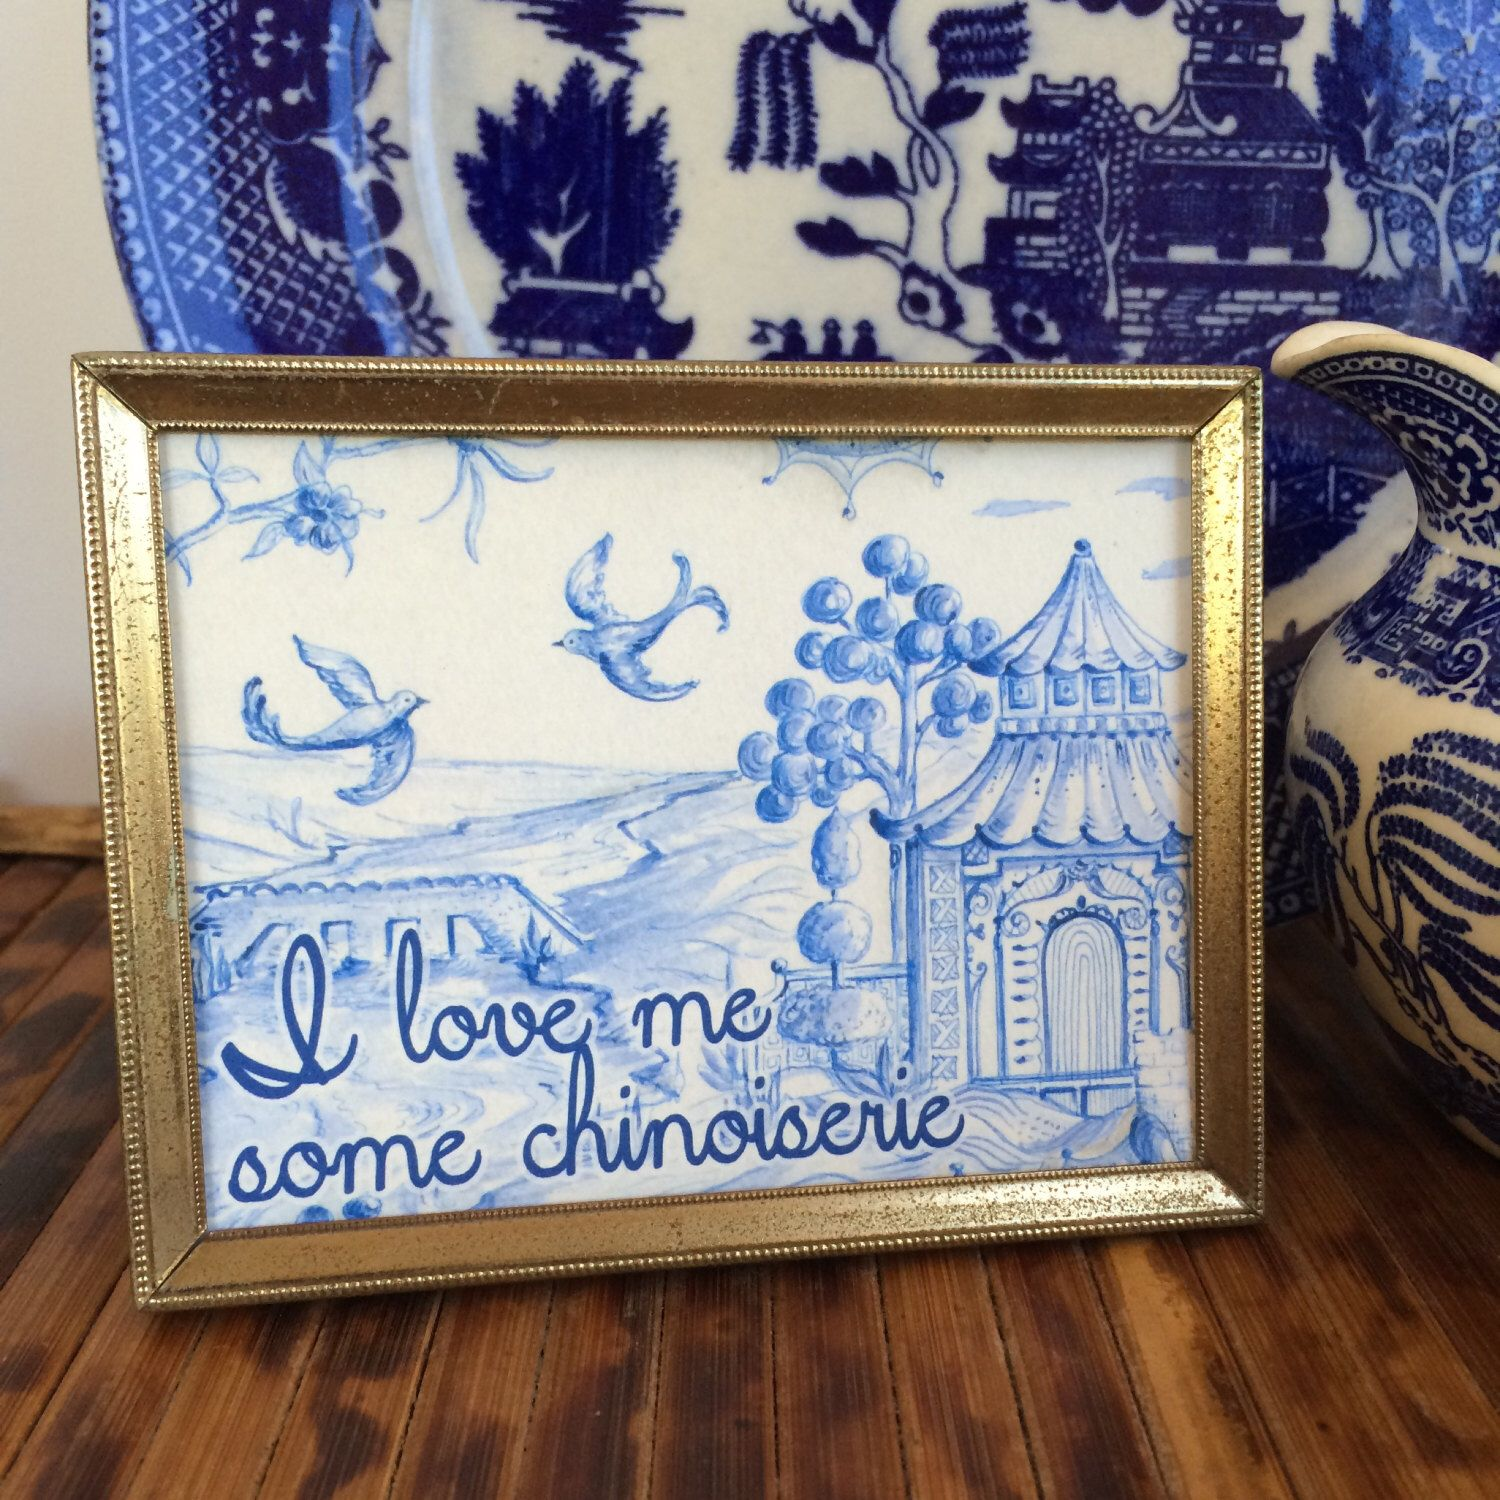 Vintage Chinoiserie | blue willow | art print | blue and white | pagoda art | framed quote decor printable | blue and white | hostess gift by PloverPrintables on Etsy https://www.etsy.com/listing/206922566/vintage-chinoiserie-blue-willow-art